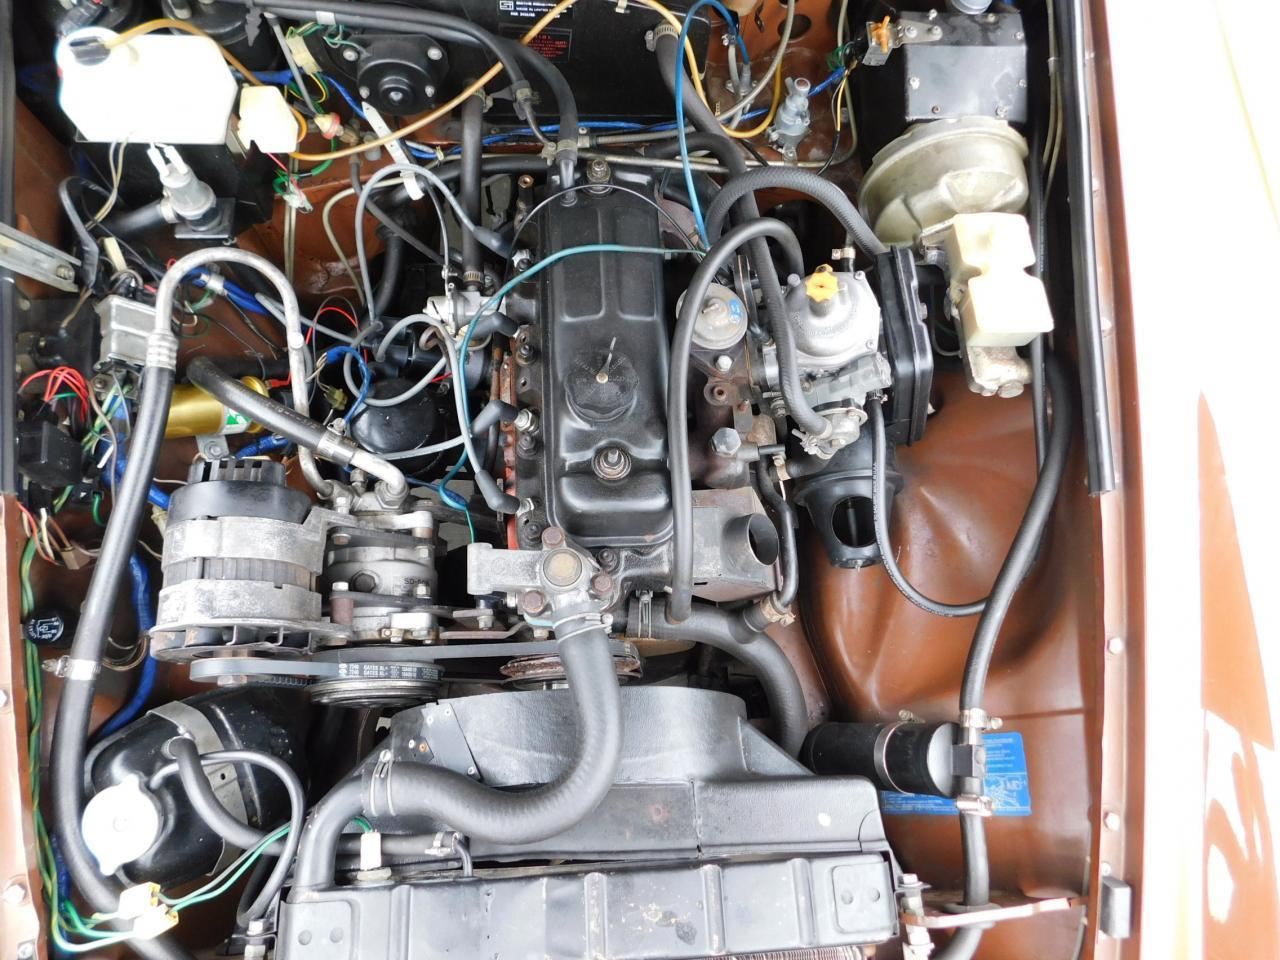 hight resolution of 1979 mgb electrical wiring ngs wiring diagram 1979 mgb wiring schematic 1979 mg mgb wiring diagram